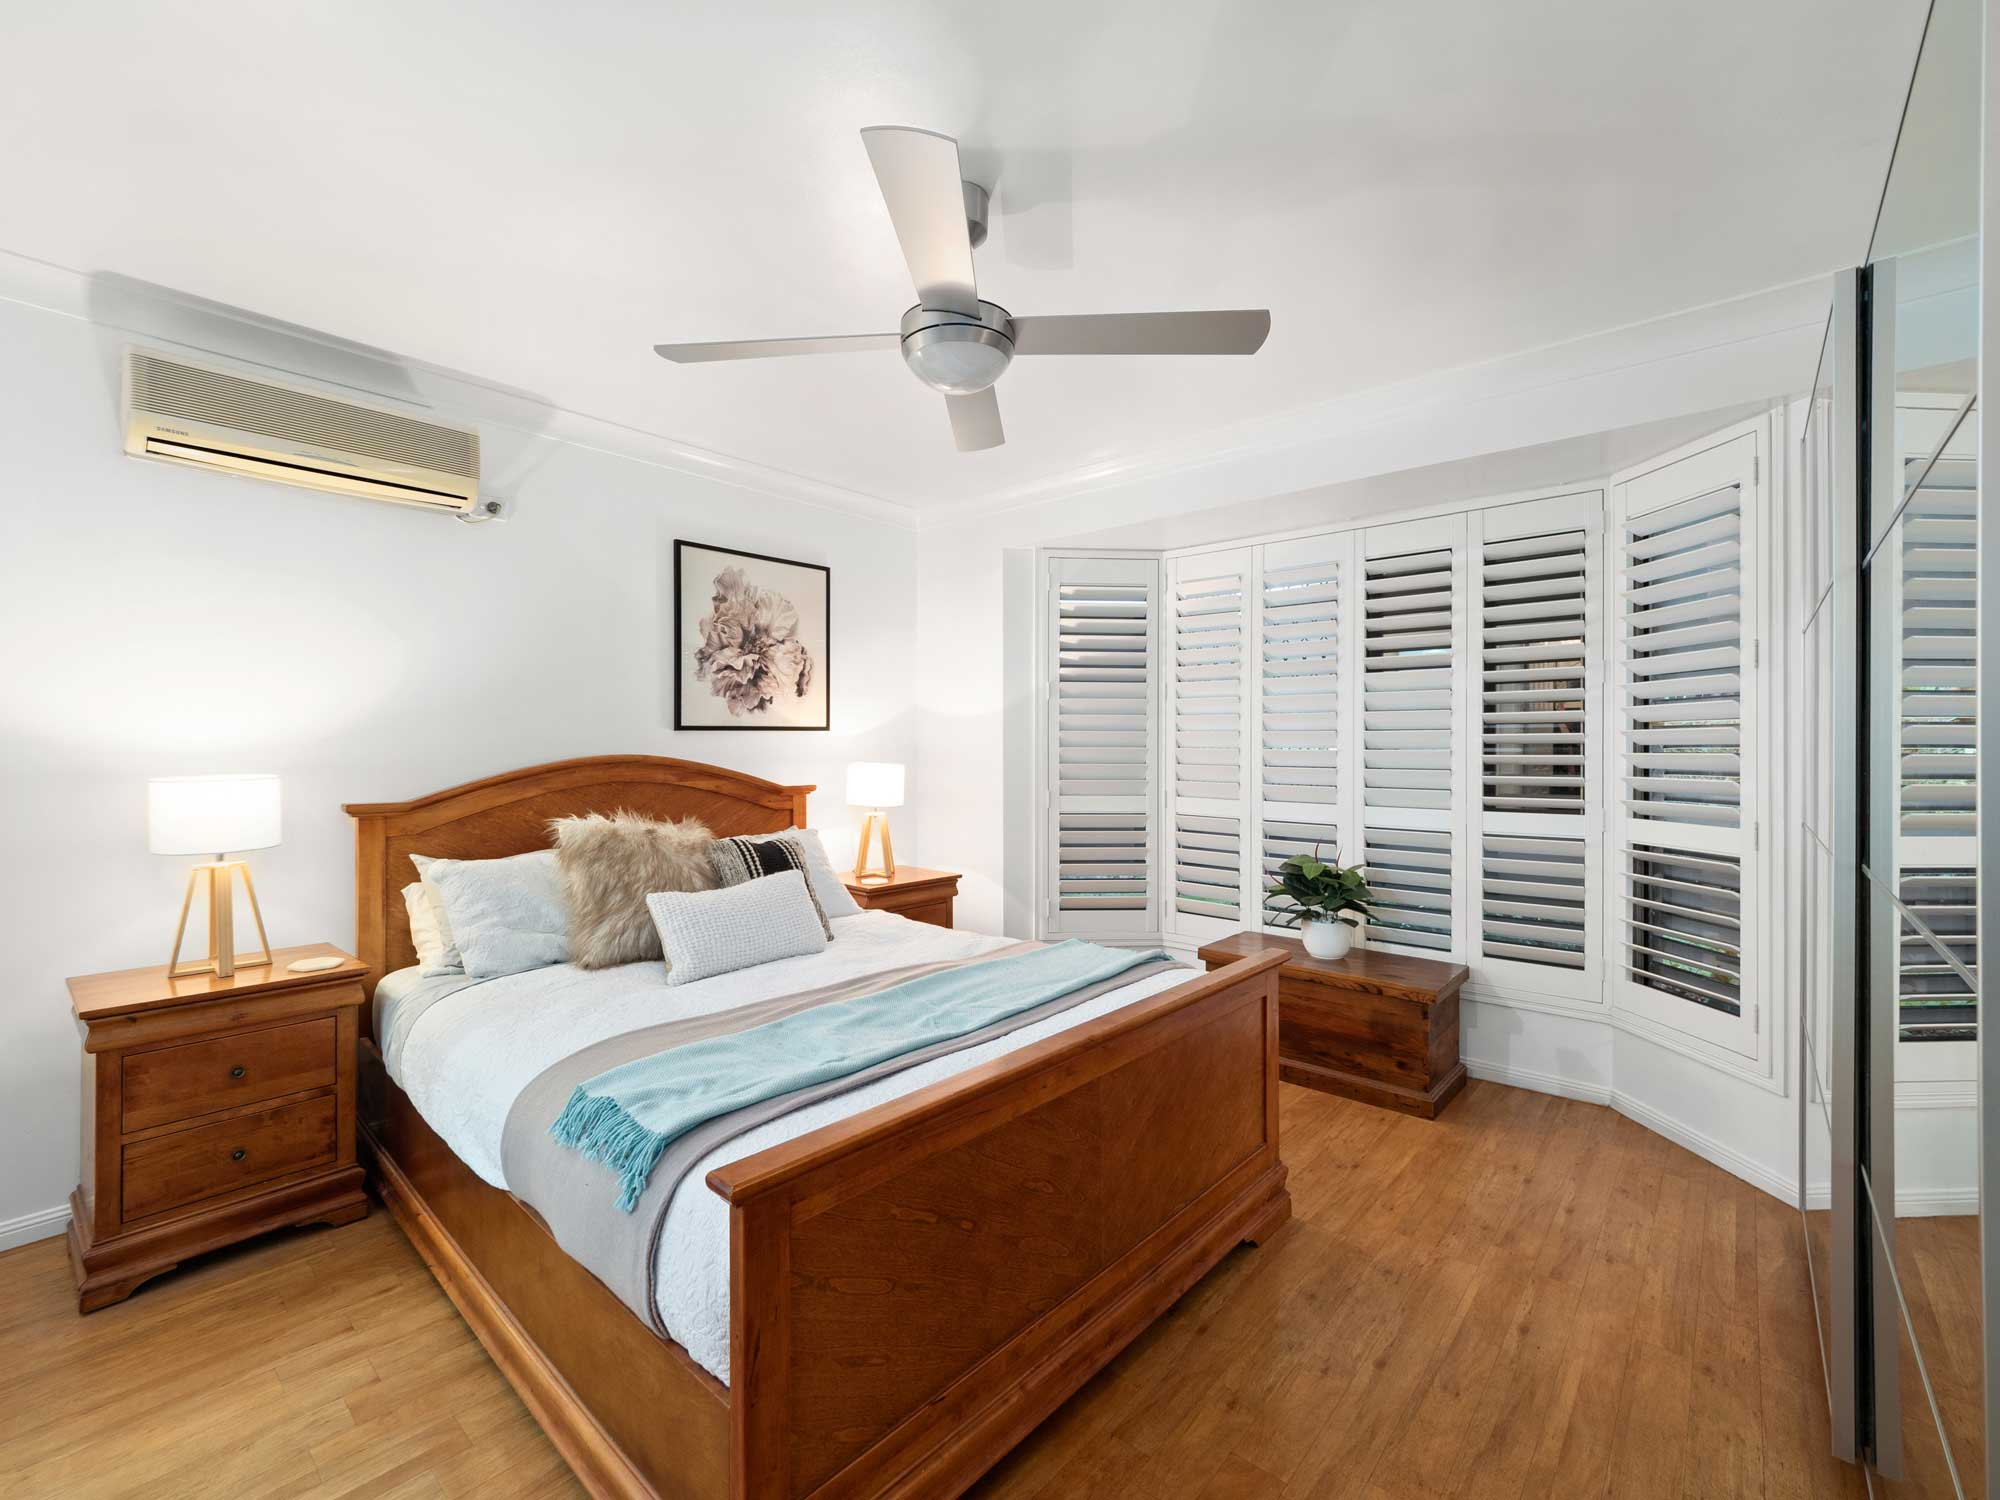 Real estate photography at 3 Wealth St Kuraby Brisbane